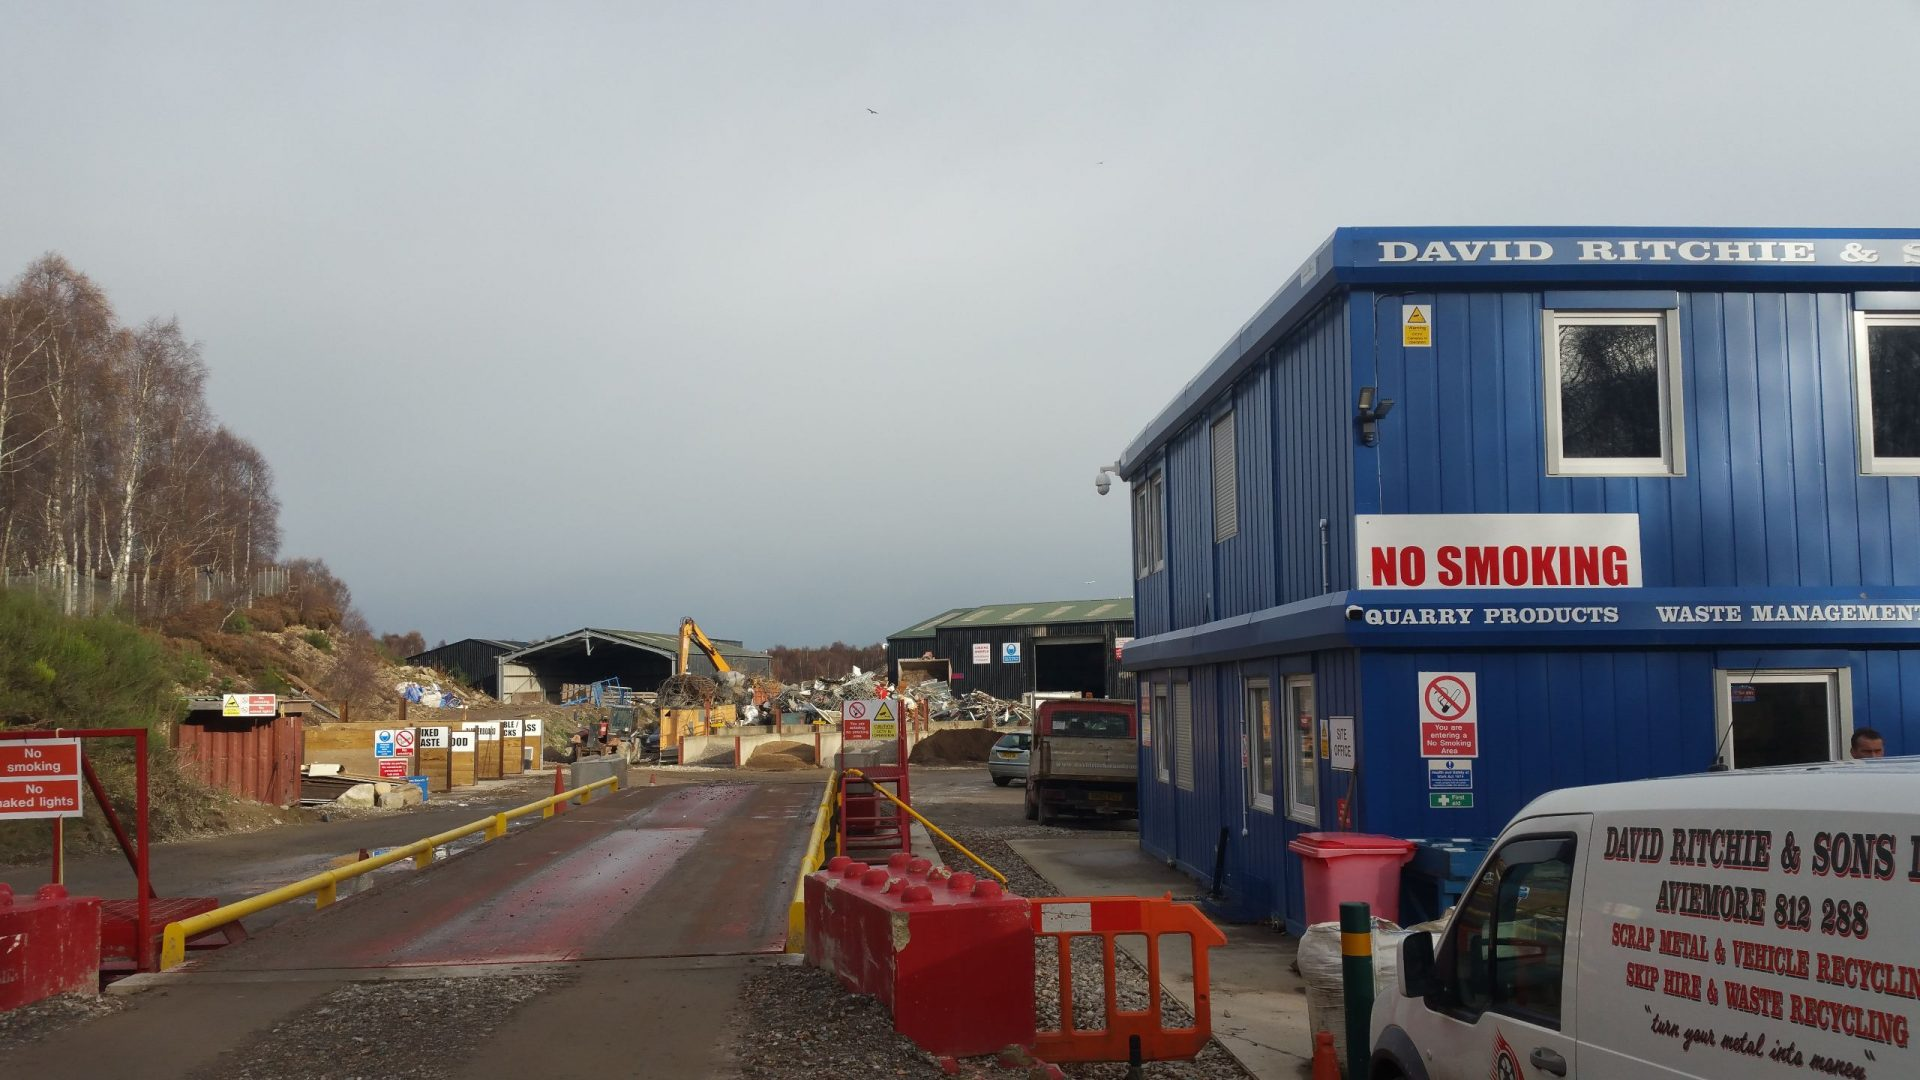 Site office and weigh bridge